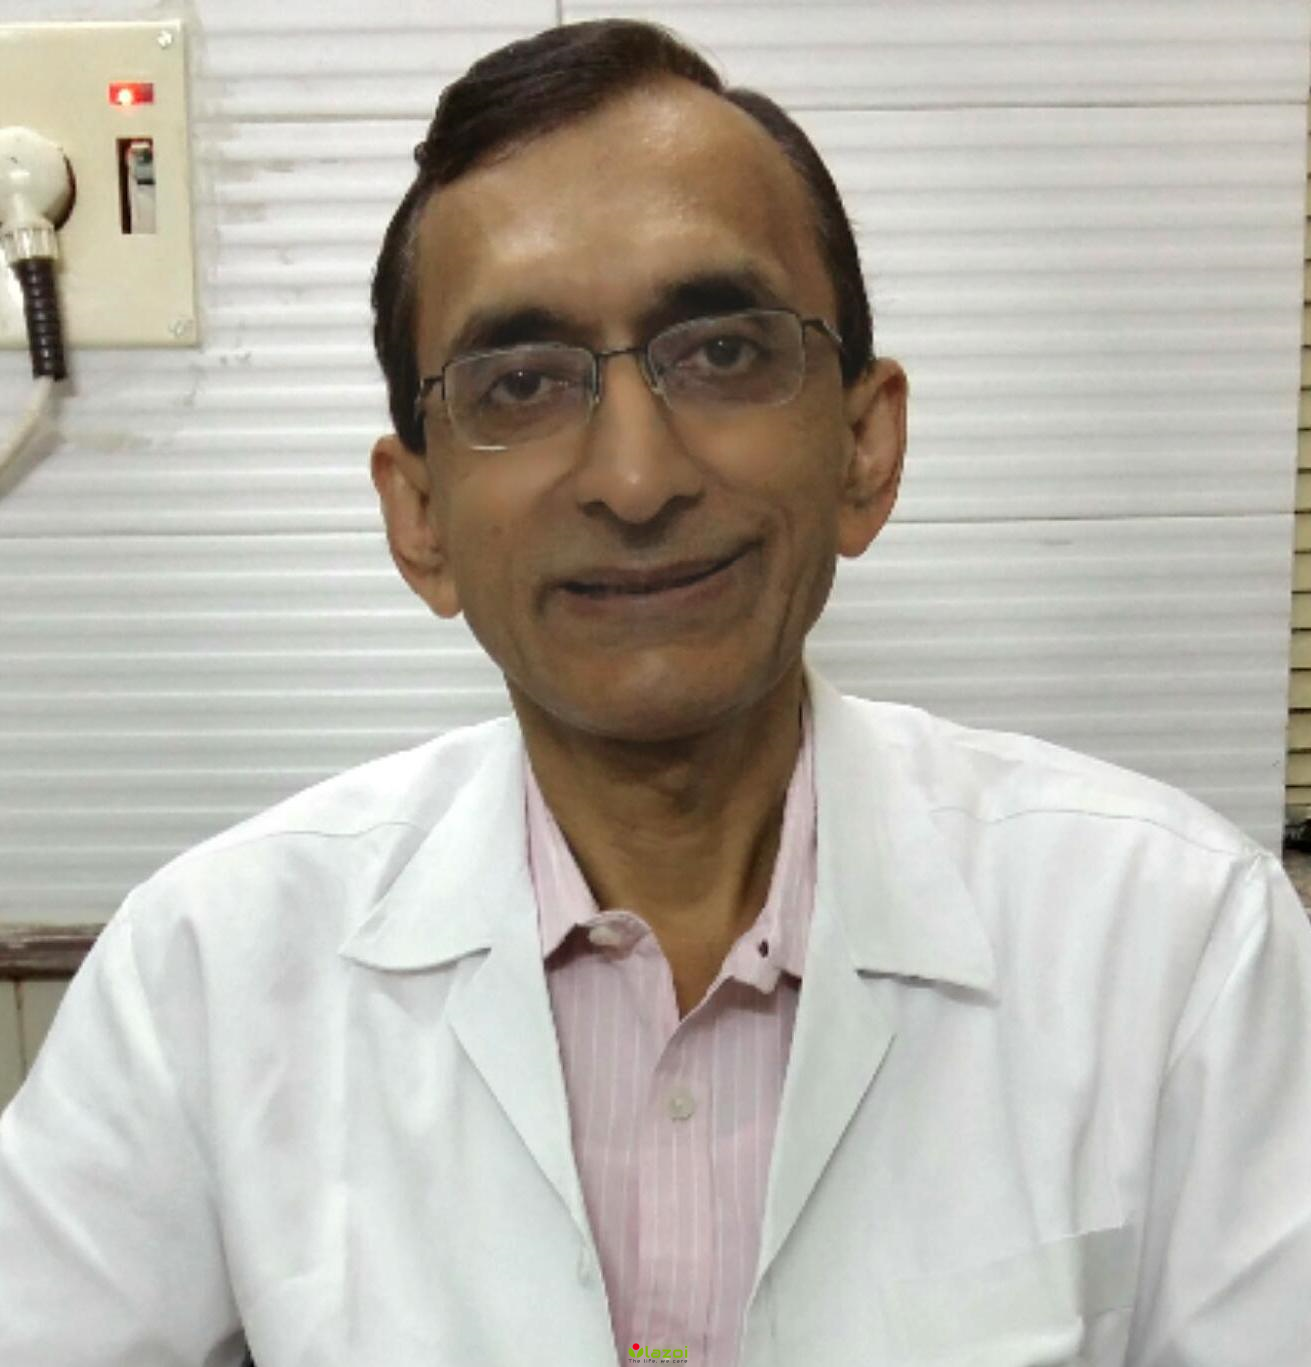 Dr. Abhijit Mohan Varpe, Dentist in Borivali West, online appointment, fees for  Dr. Abhijit Mohan Varpe, address of Dr. Abhijit Mohan Varpe, view fees, feedback of Dr. Abhijit Mohan Varpe, Dr. Abhijit Mohan Varpe in Borivali West, Dr. Abhijit Mohan Varpe in Mumbai